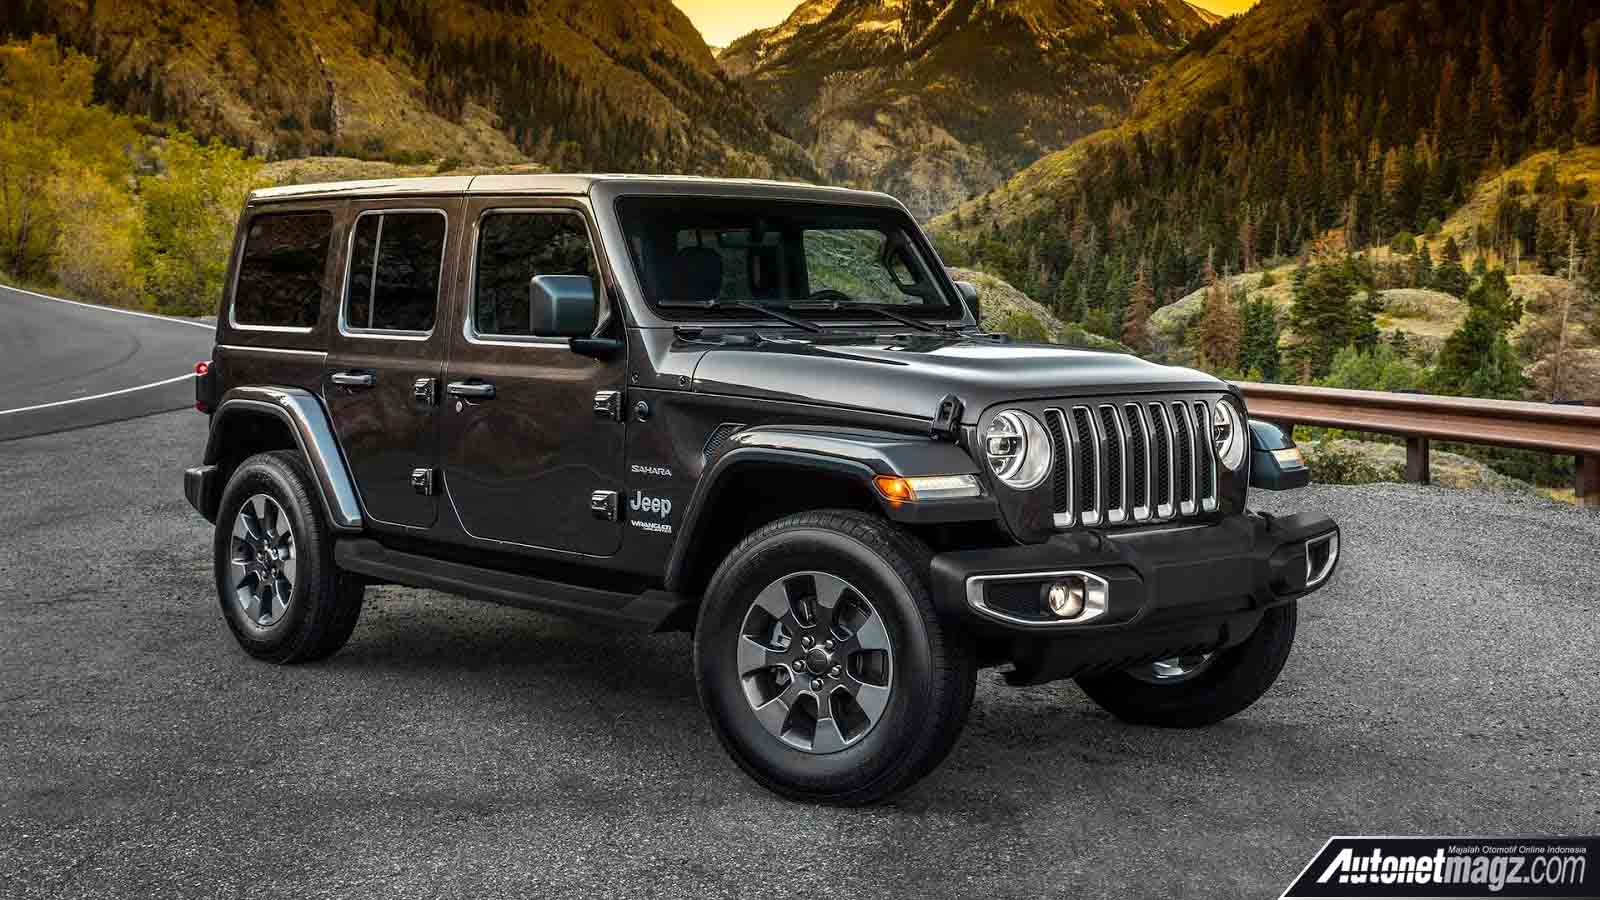 jeep wrangler 2018 hard top long depan autonetmagz review mobil dan motor baru indonesia. Black Bedroom Furniture Sets. Home Design Ideas